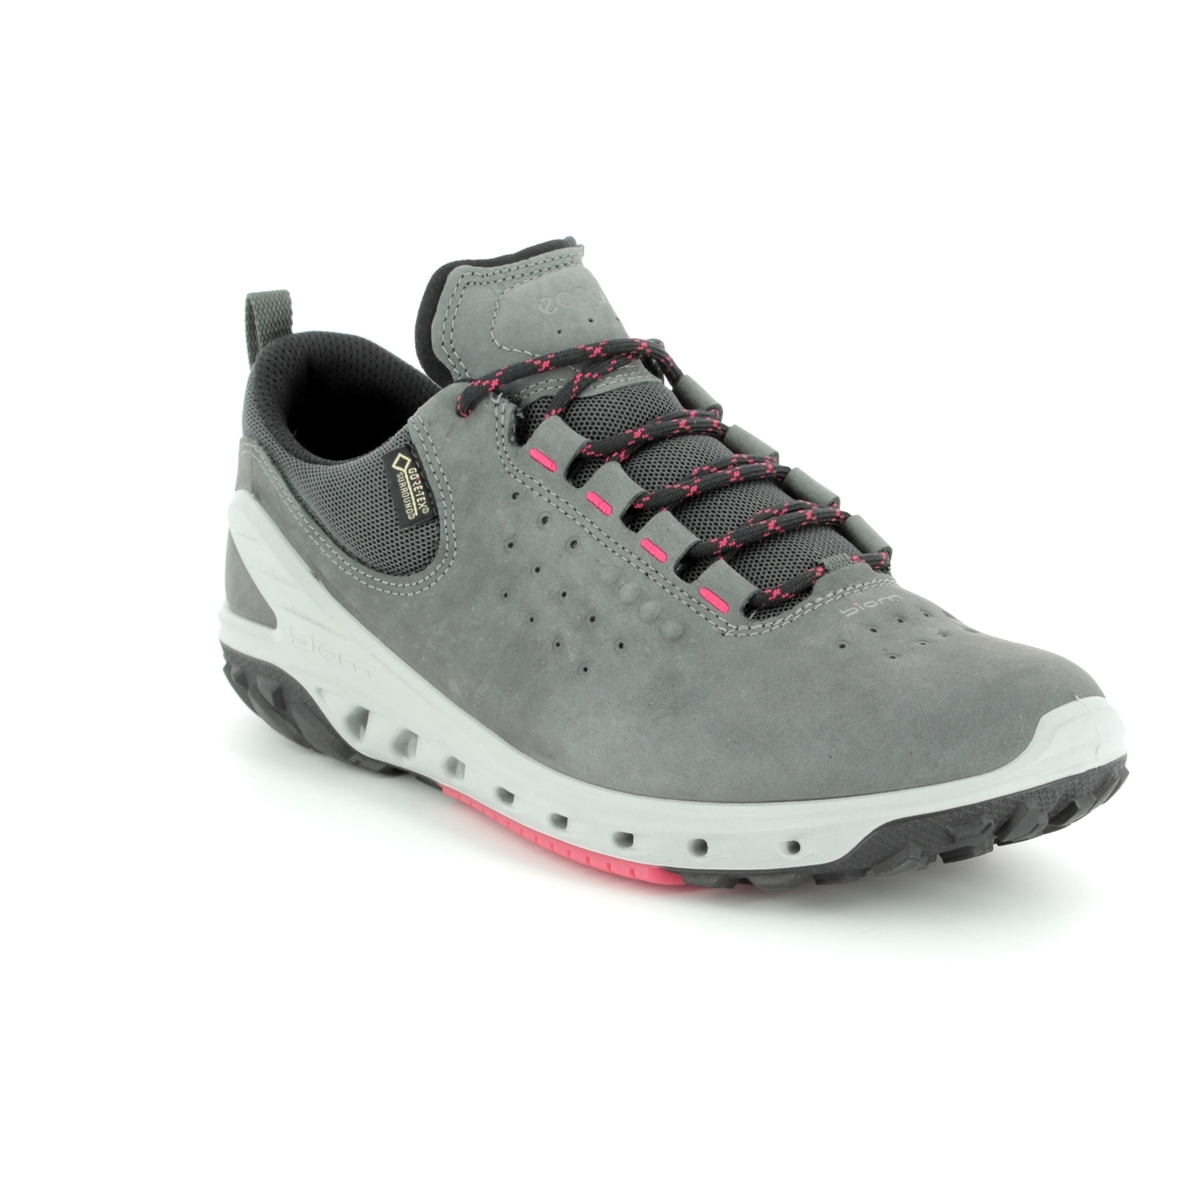 ad3391811e9c ECCO Walking Shoes - Dark grey multi - 820723 56586 BIOM VENTURE GORE-TEX